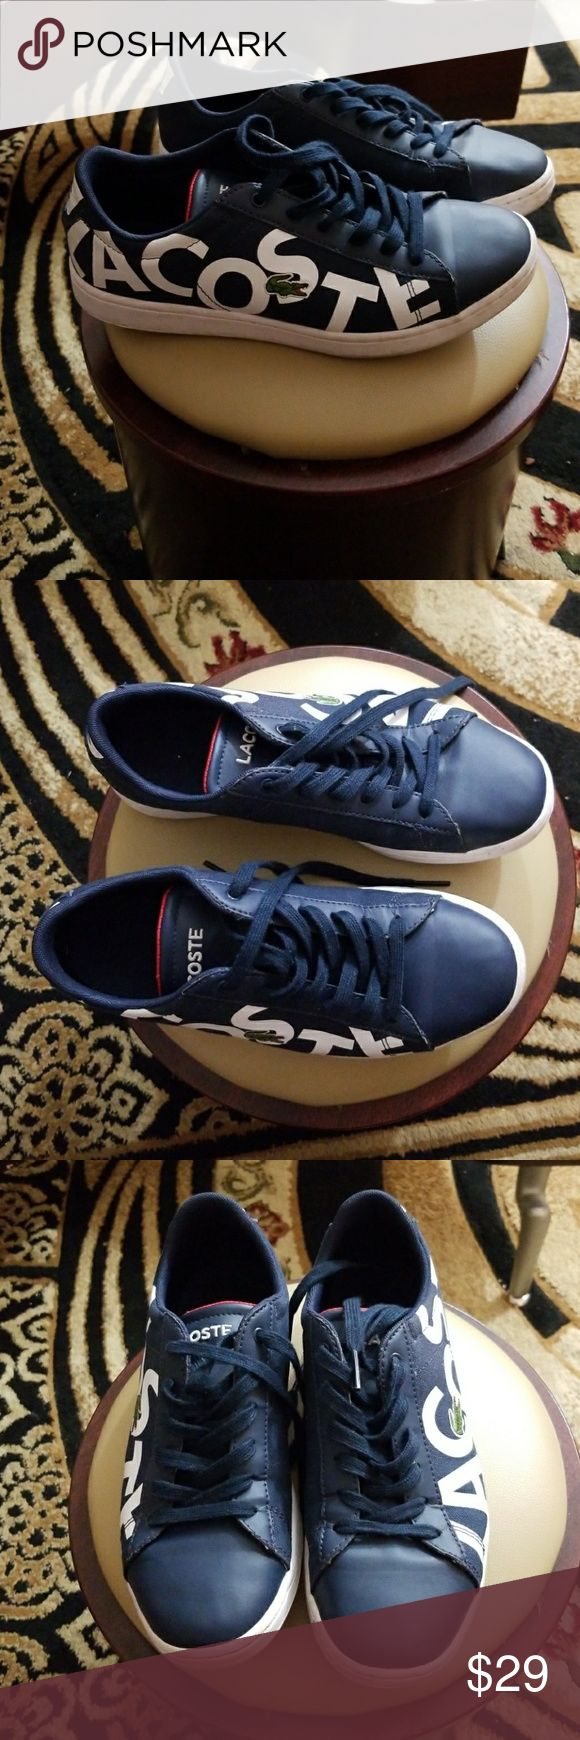 Kids blue lacoste sneakers size 5 Preowned boys blue Lacoste sneakers size 5. I bought these for my son and in only wore them maybe 5 times. He grew out of them. KIDS GROW FASTER THAN I EXPECT. Lol!! The sneakers are in great condition and the sole is not warn out. Your kid will love these sneakers. Lacoste Shoes Sneakers